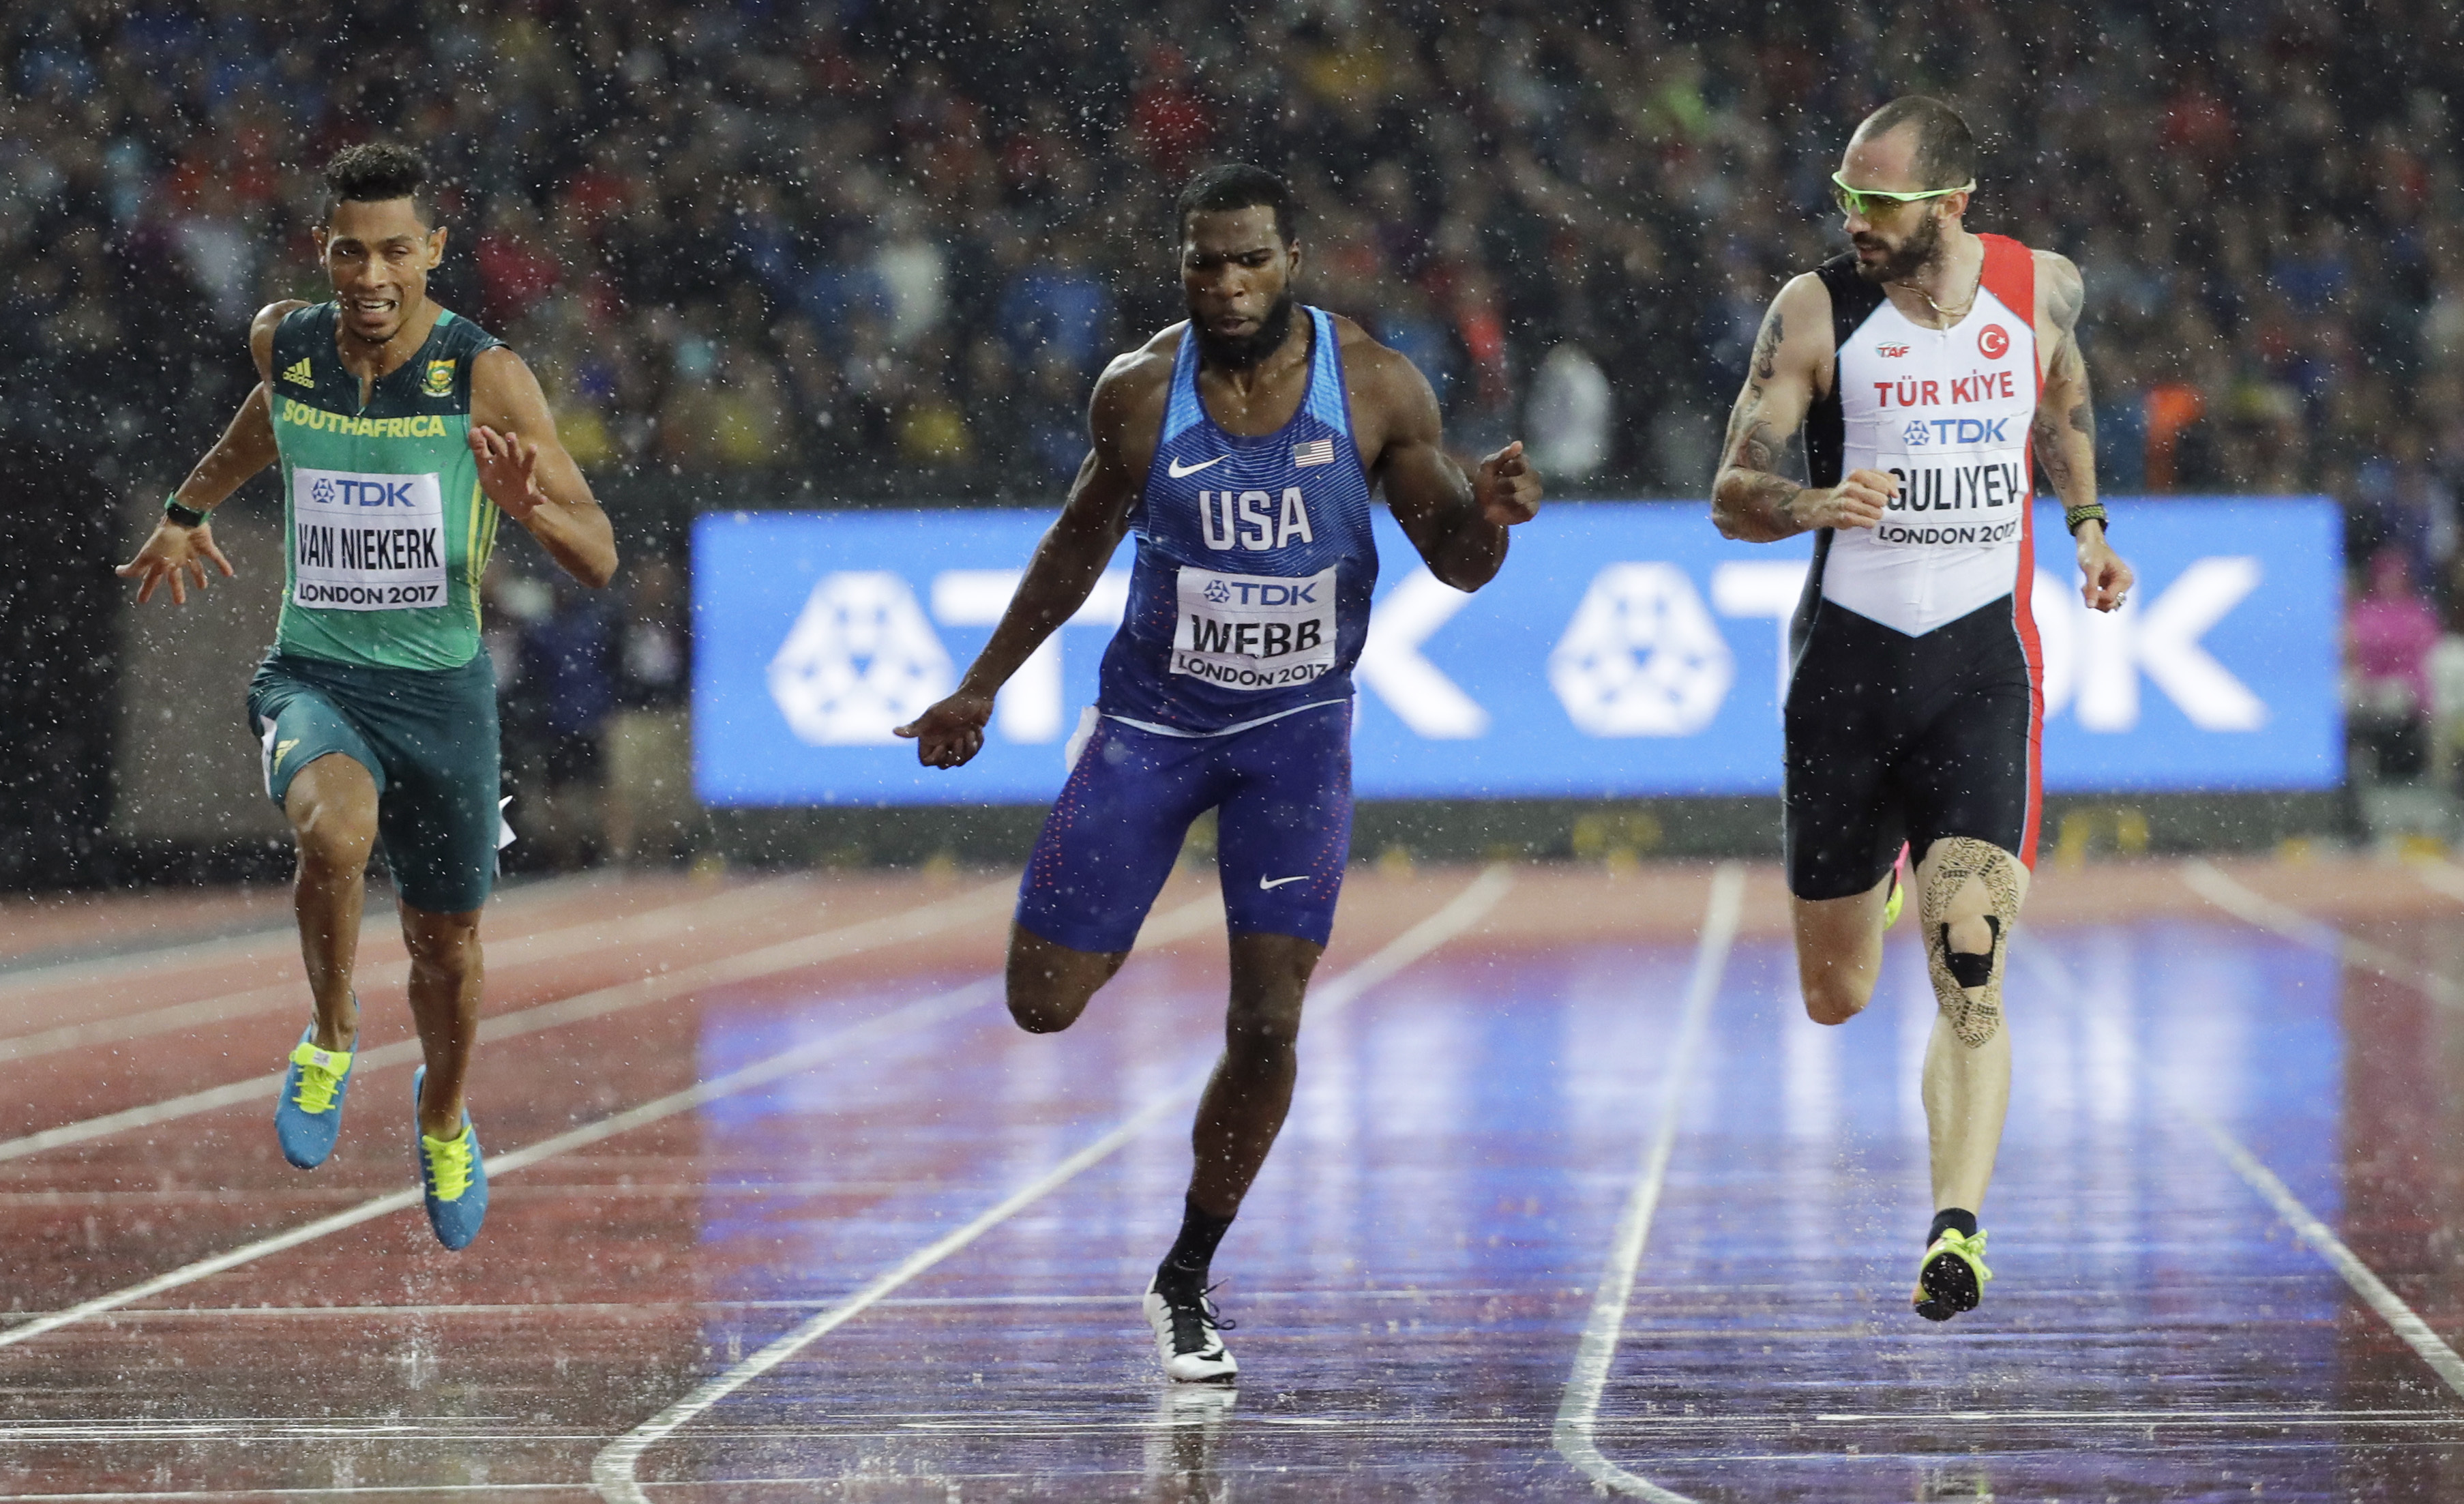 Turkey's Ramil Guliyev, United States' Ameer Webb and South Africa's Wayde van Niekerk cross the line in a Men's 200m semifinal during the World Athletics Championships in London Wednesday, Aug. 9, 2017. (AP Photo/David J. Phillip)